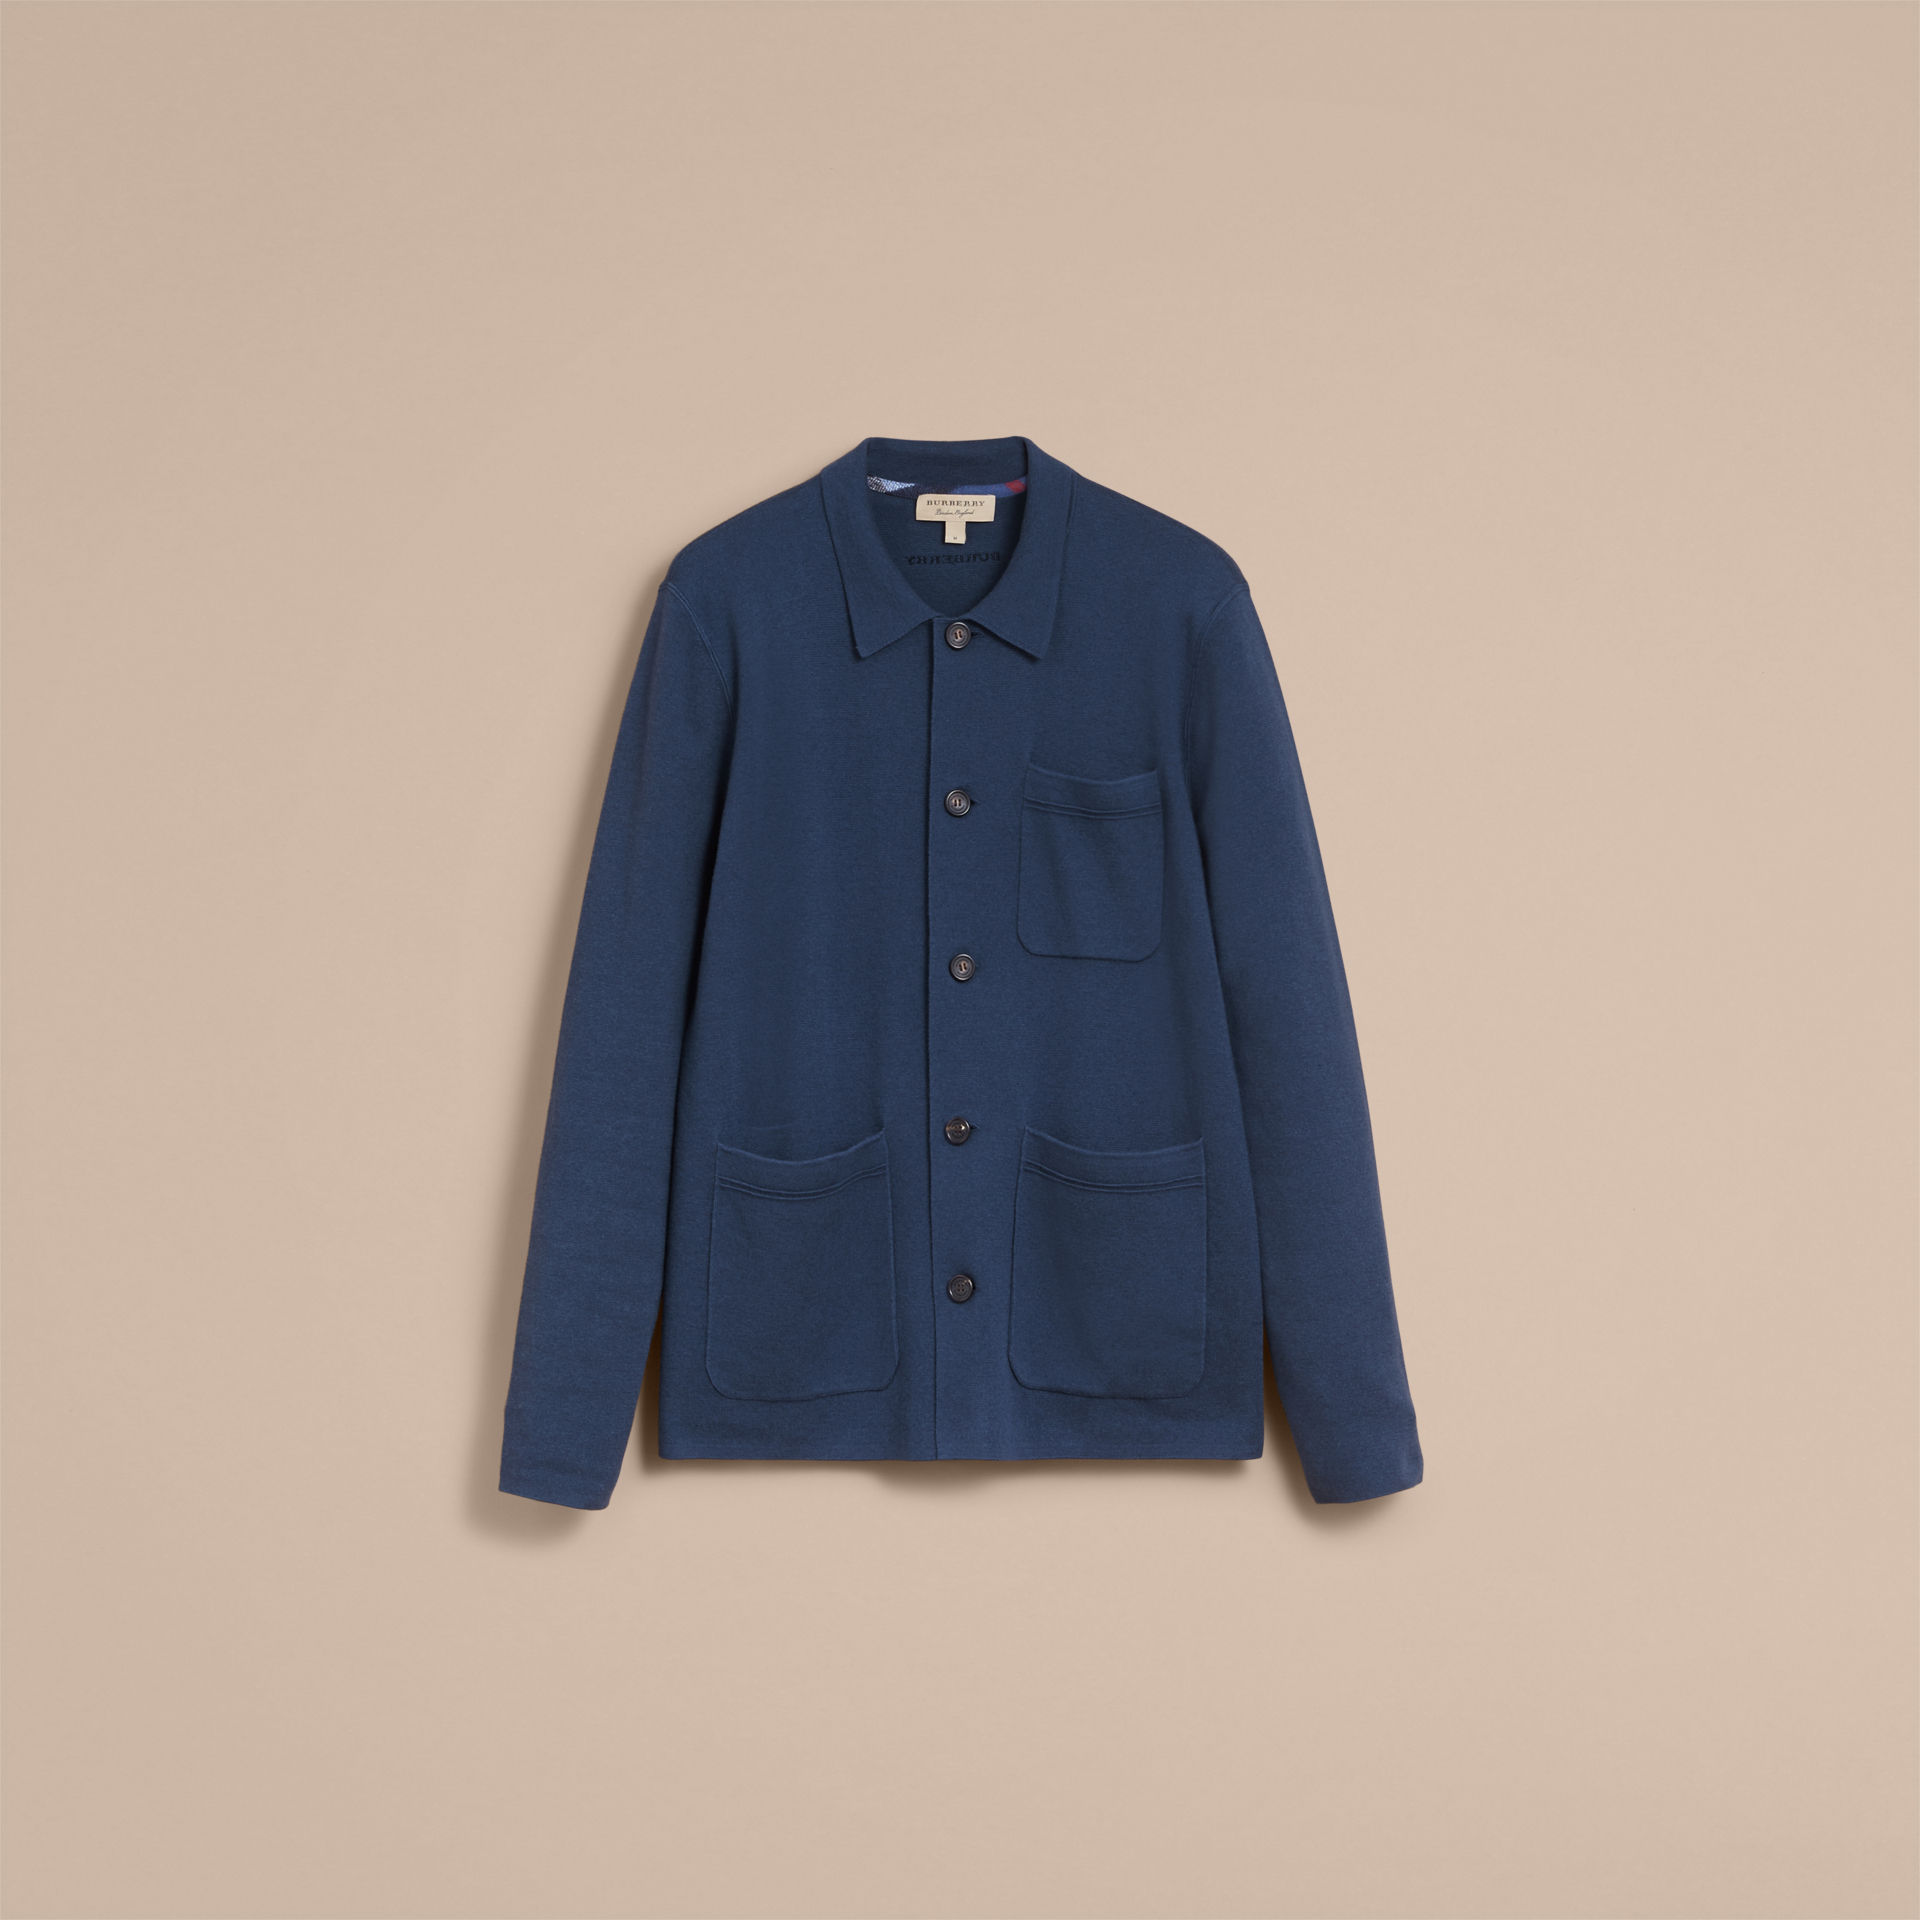 Burberry Steel Blue Knitted Cashmere Cotton Workwear Jacket